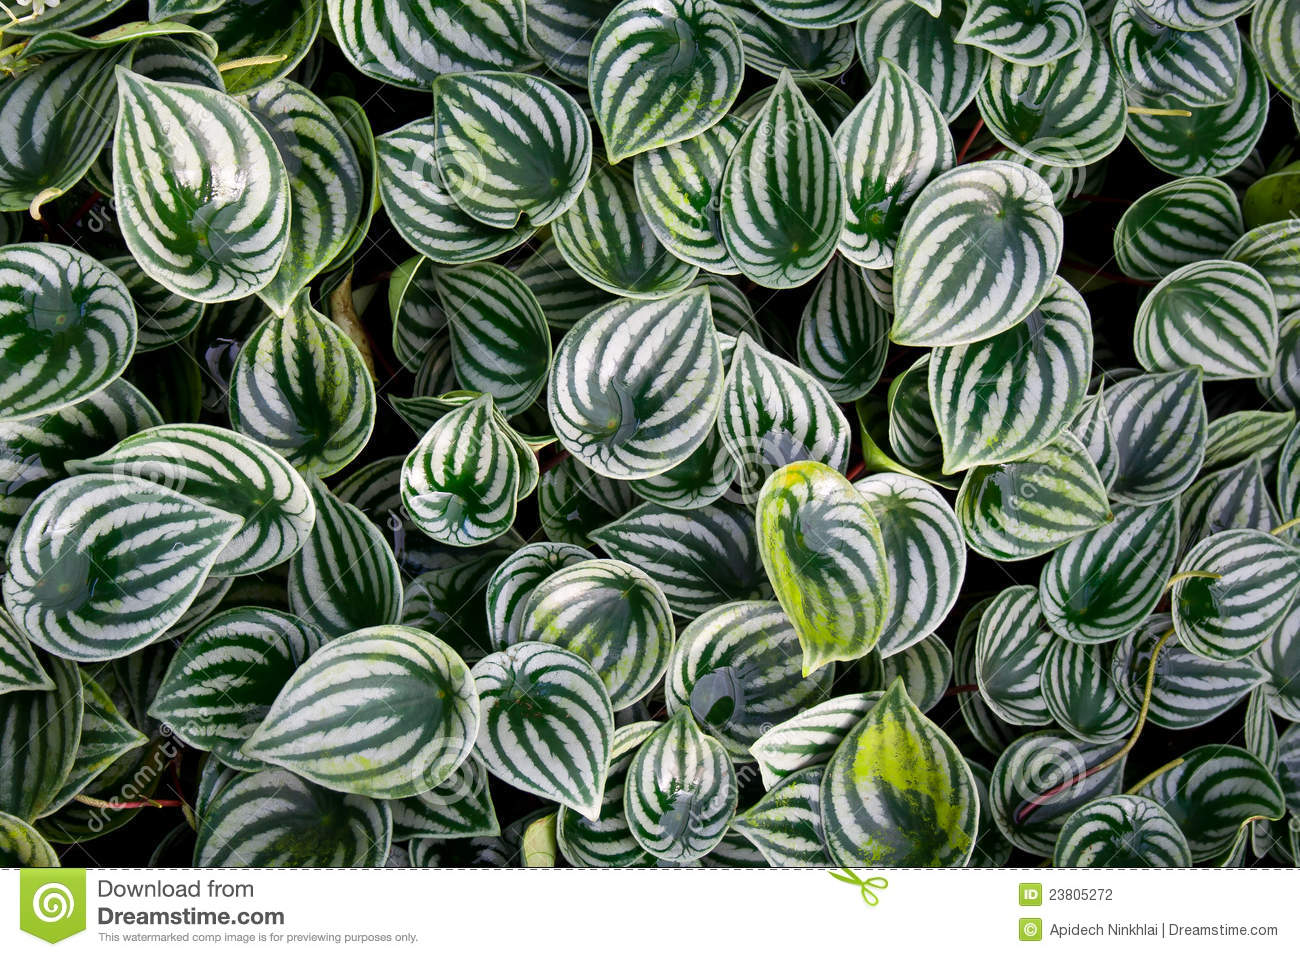 Peperomia Sandersii Watermelon Peperomia Leaves Stock Photography ...